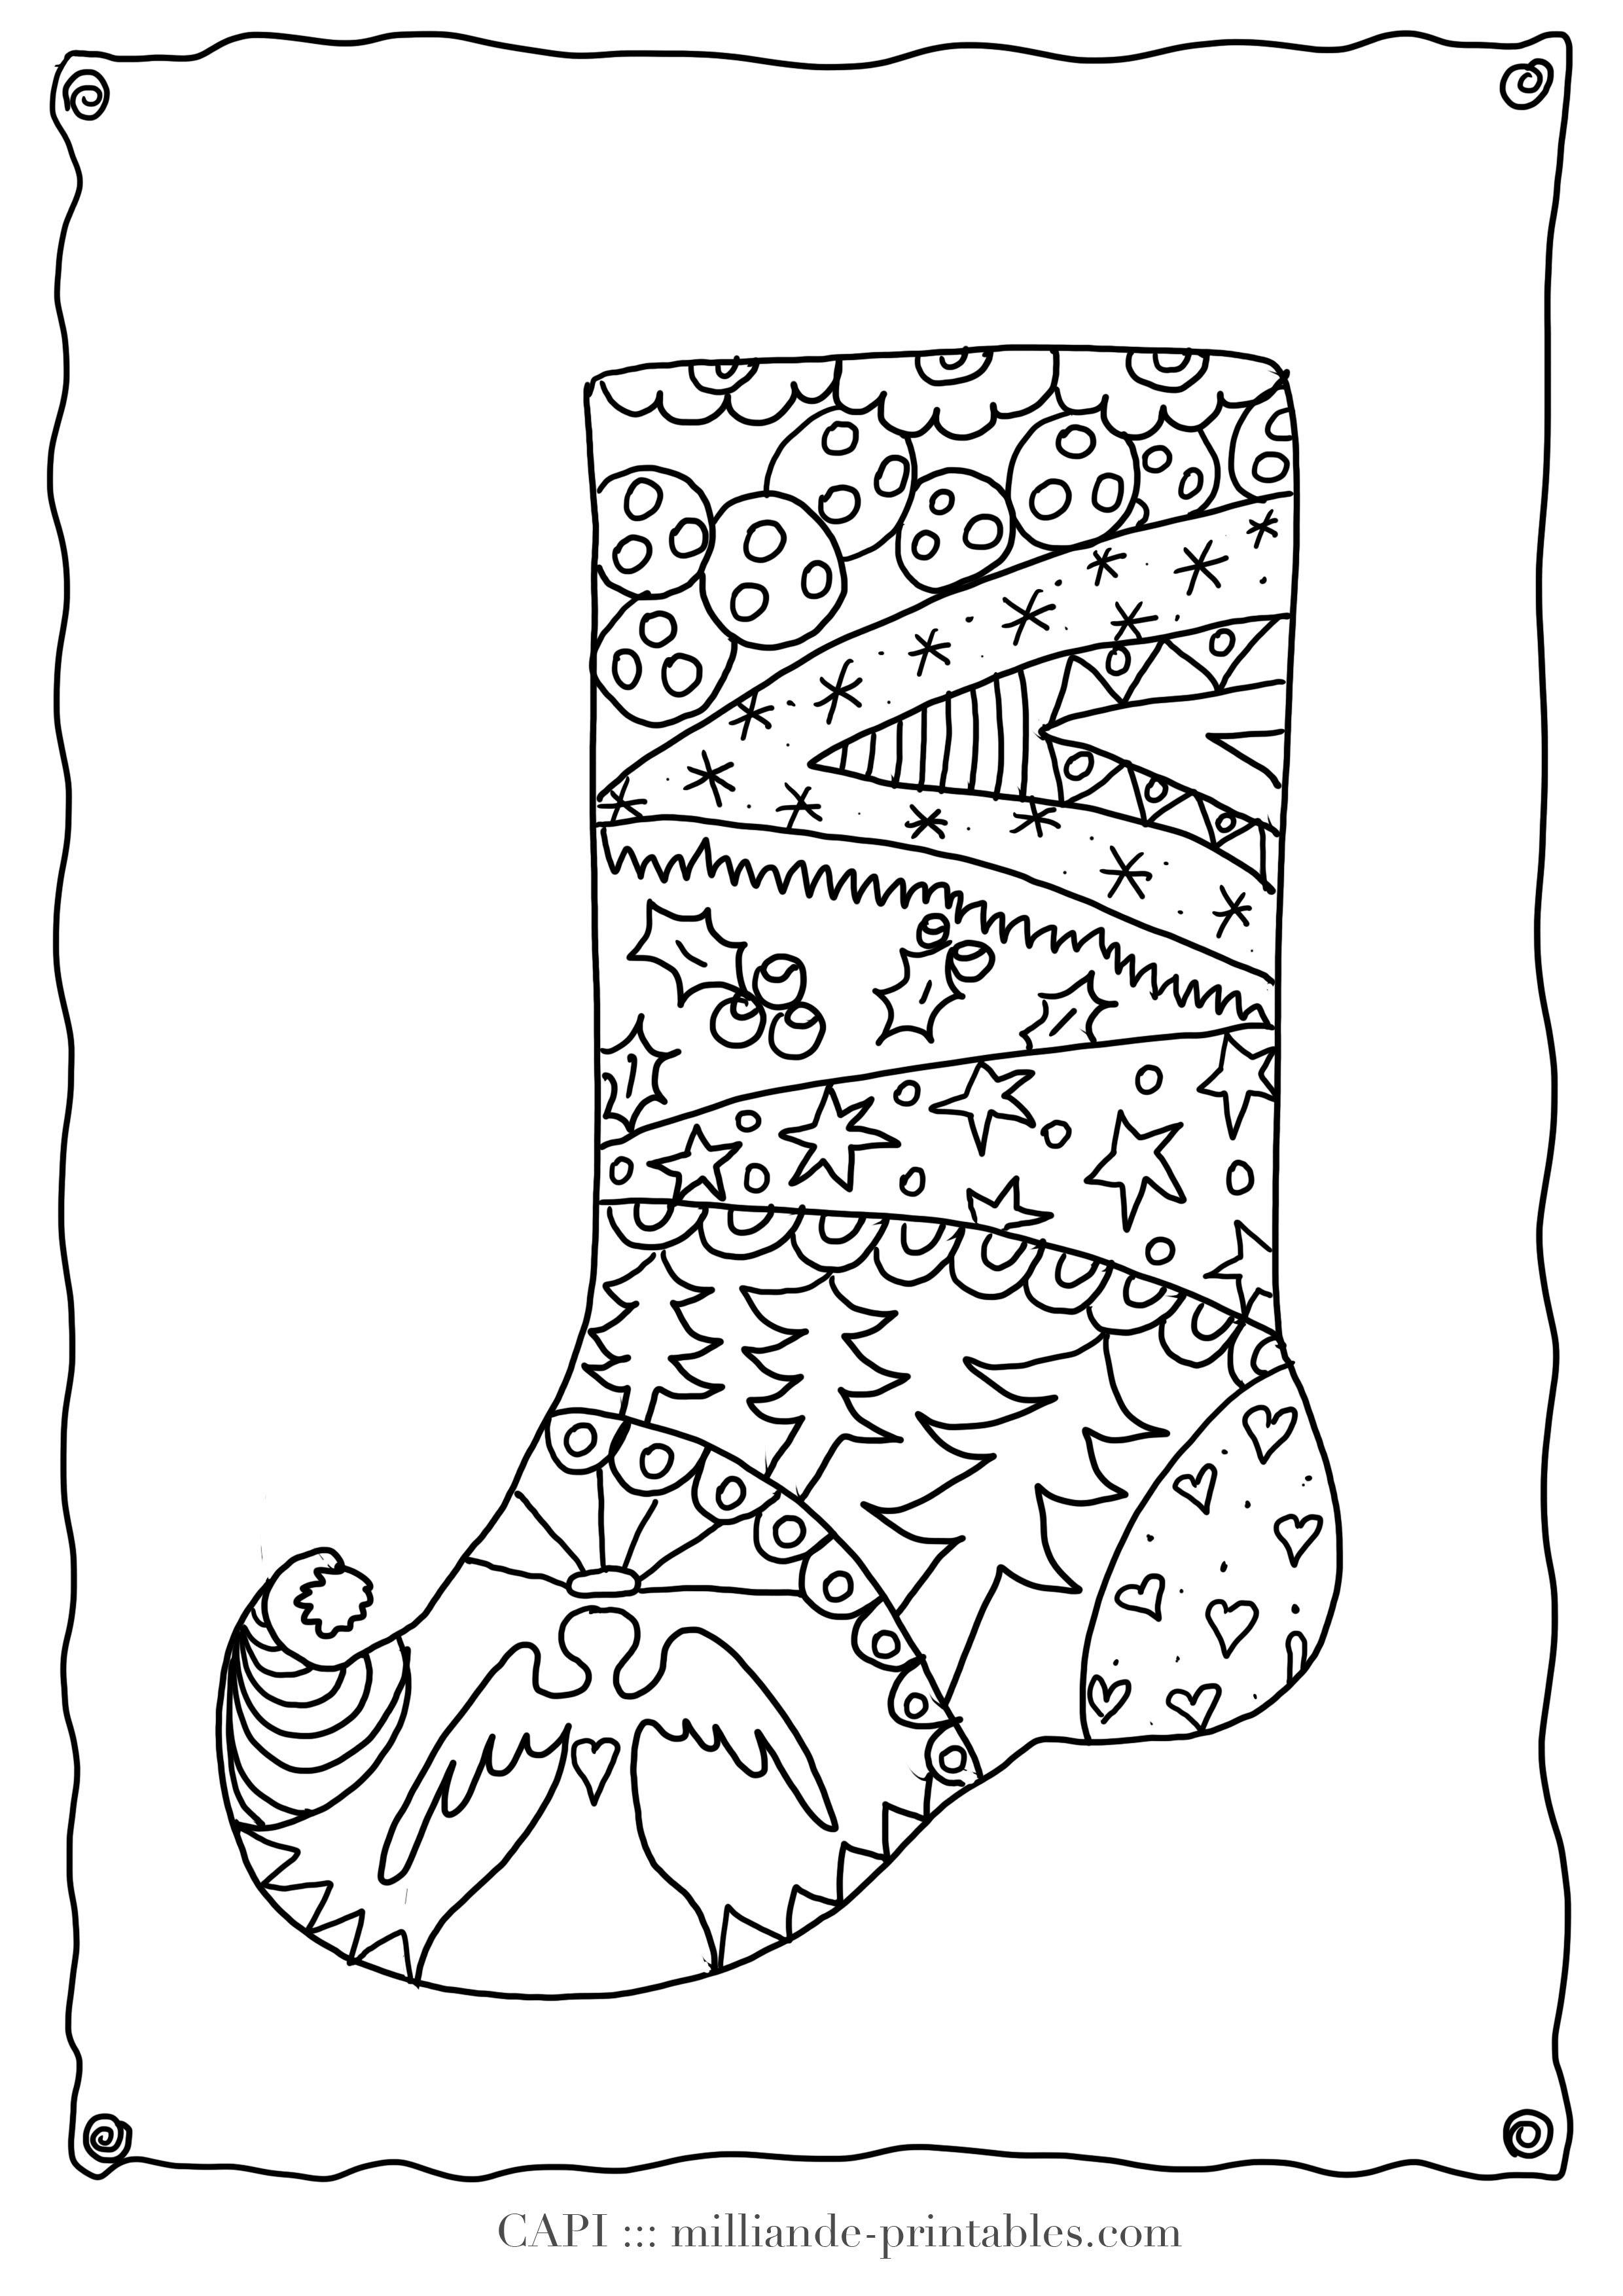 Christmas Stocking To Color Free Printable Christmas Coloring Pages - Free Printable Christmas Coloring Pages For Kids